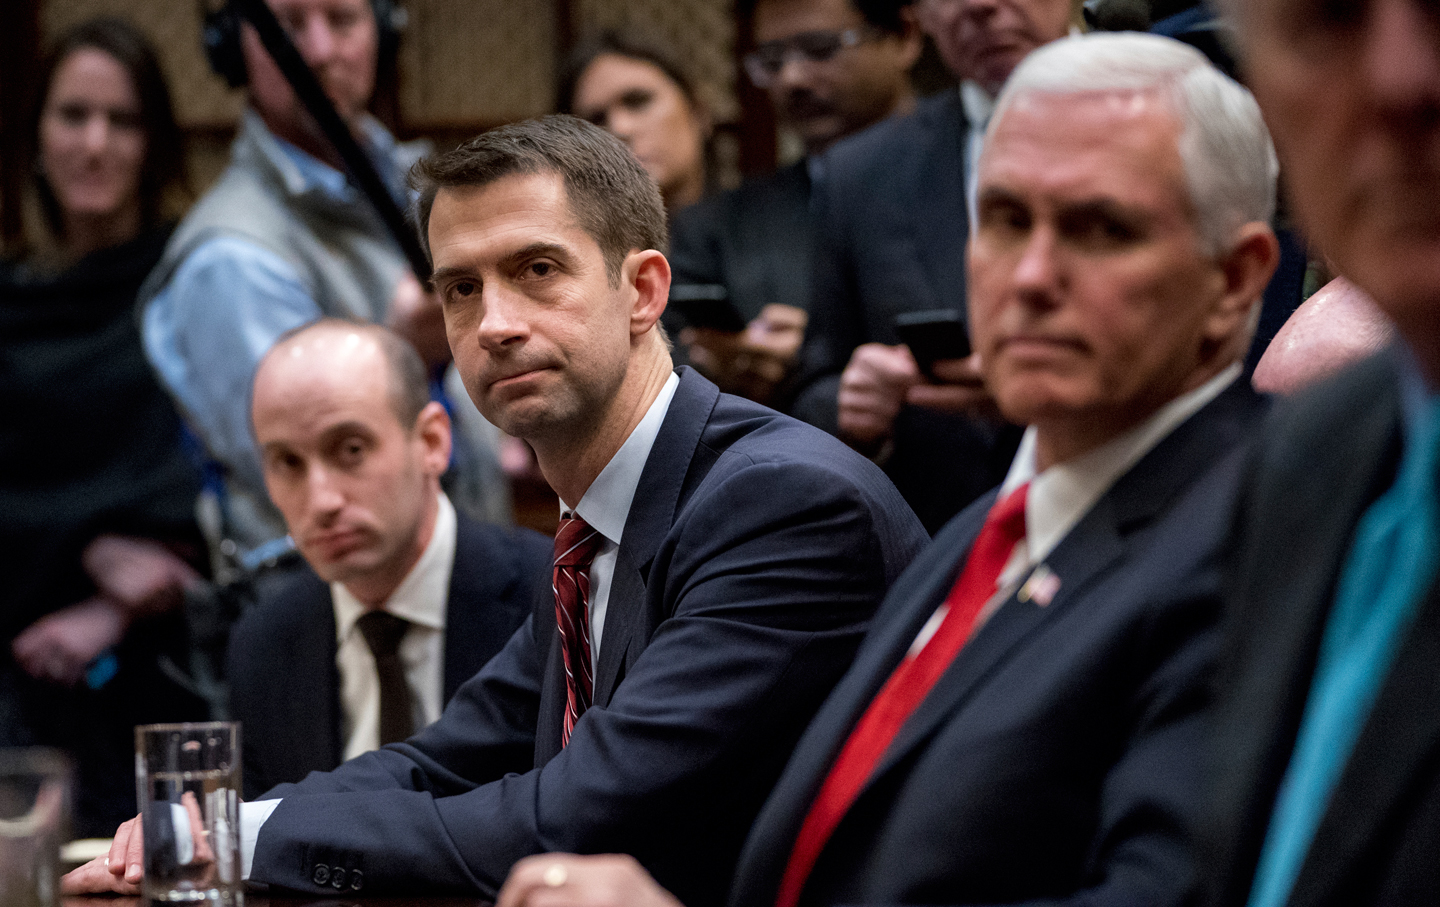 Stephen-Miller-Tom-Cotton-Pence-AP-img